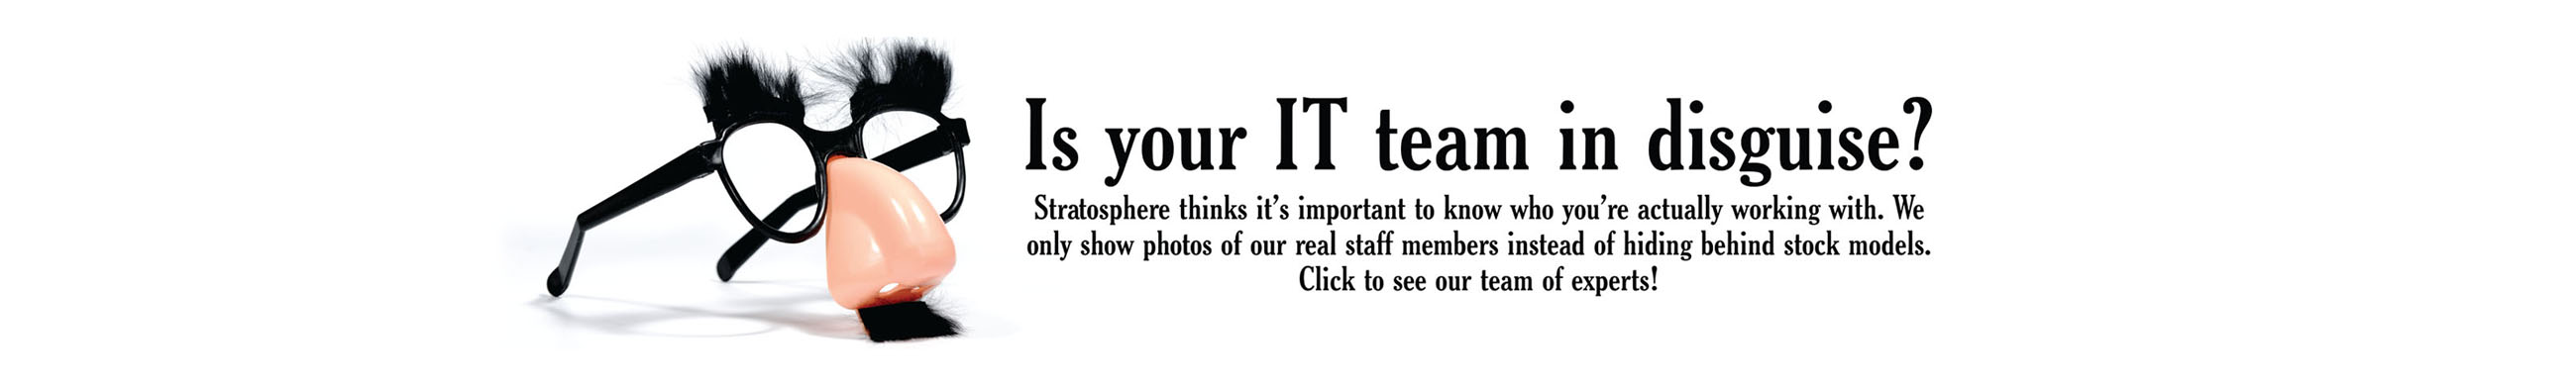 Is your IT team real